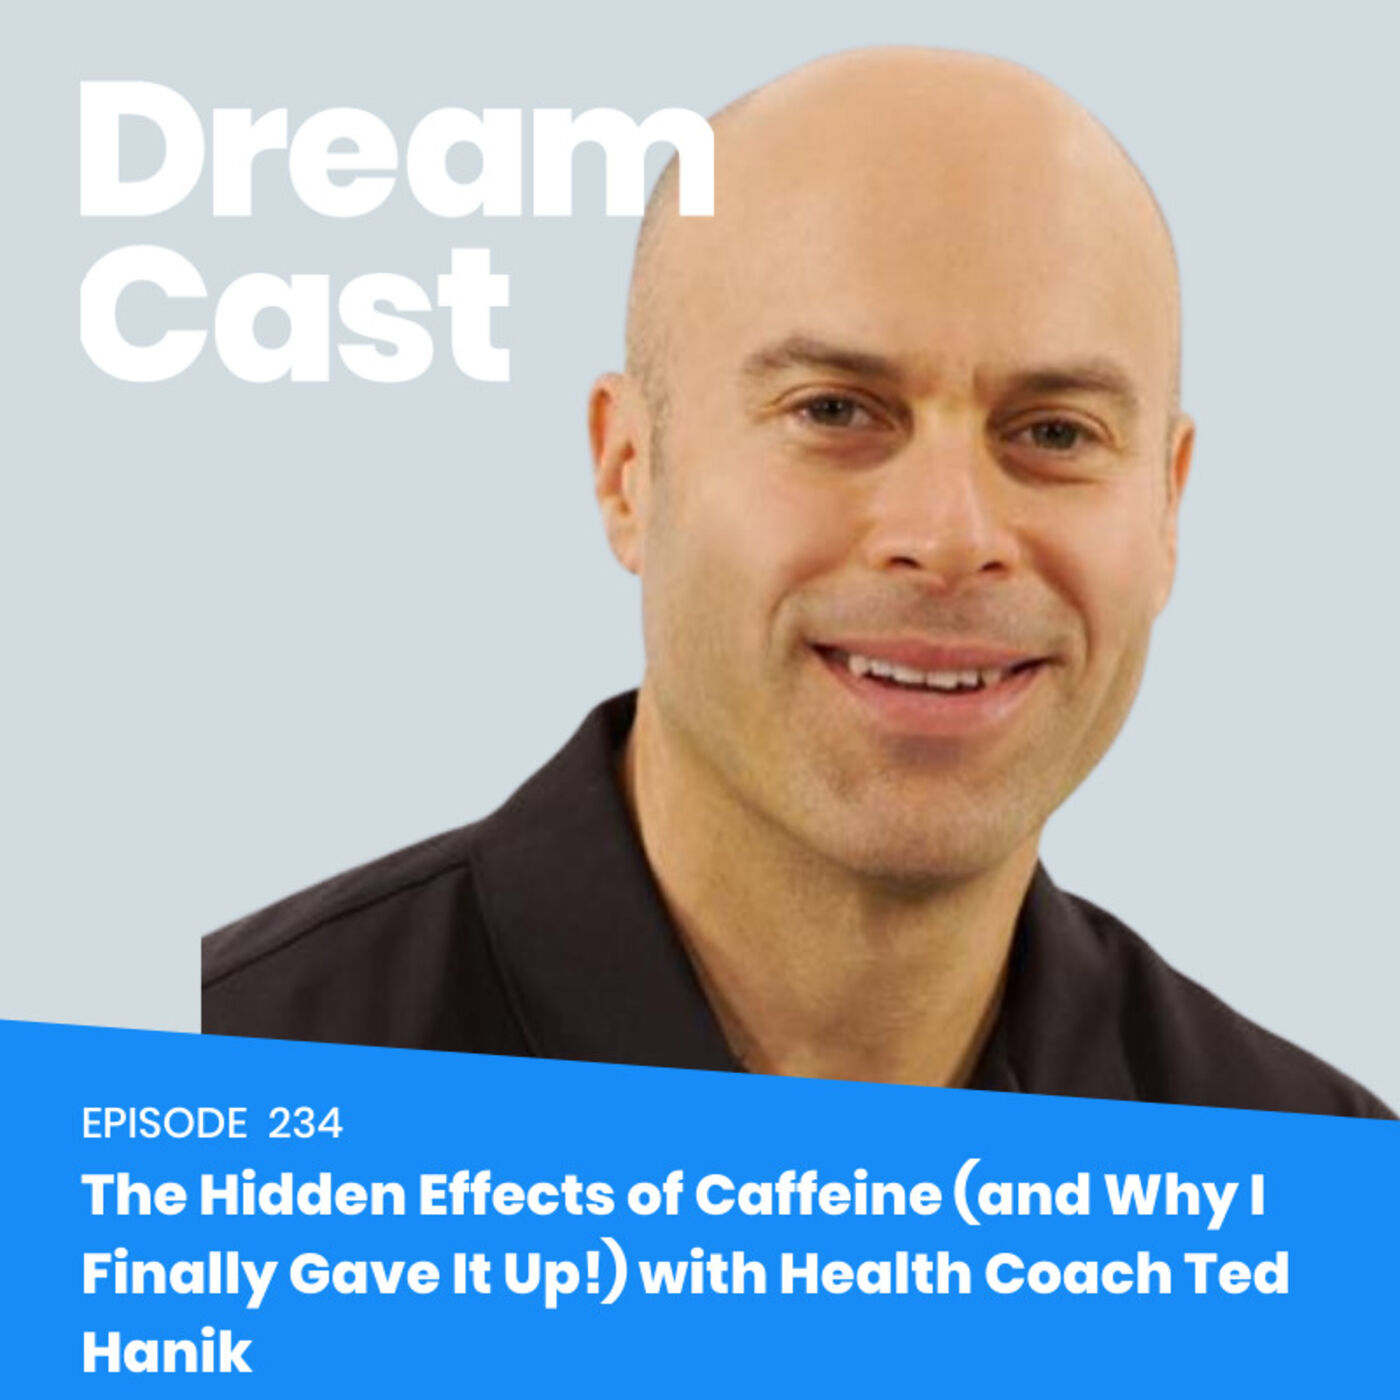 Ep 234: The Hidden Dangers of Caffeine (and Why I Finally Gave It Up!)